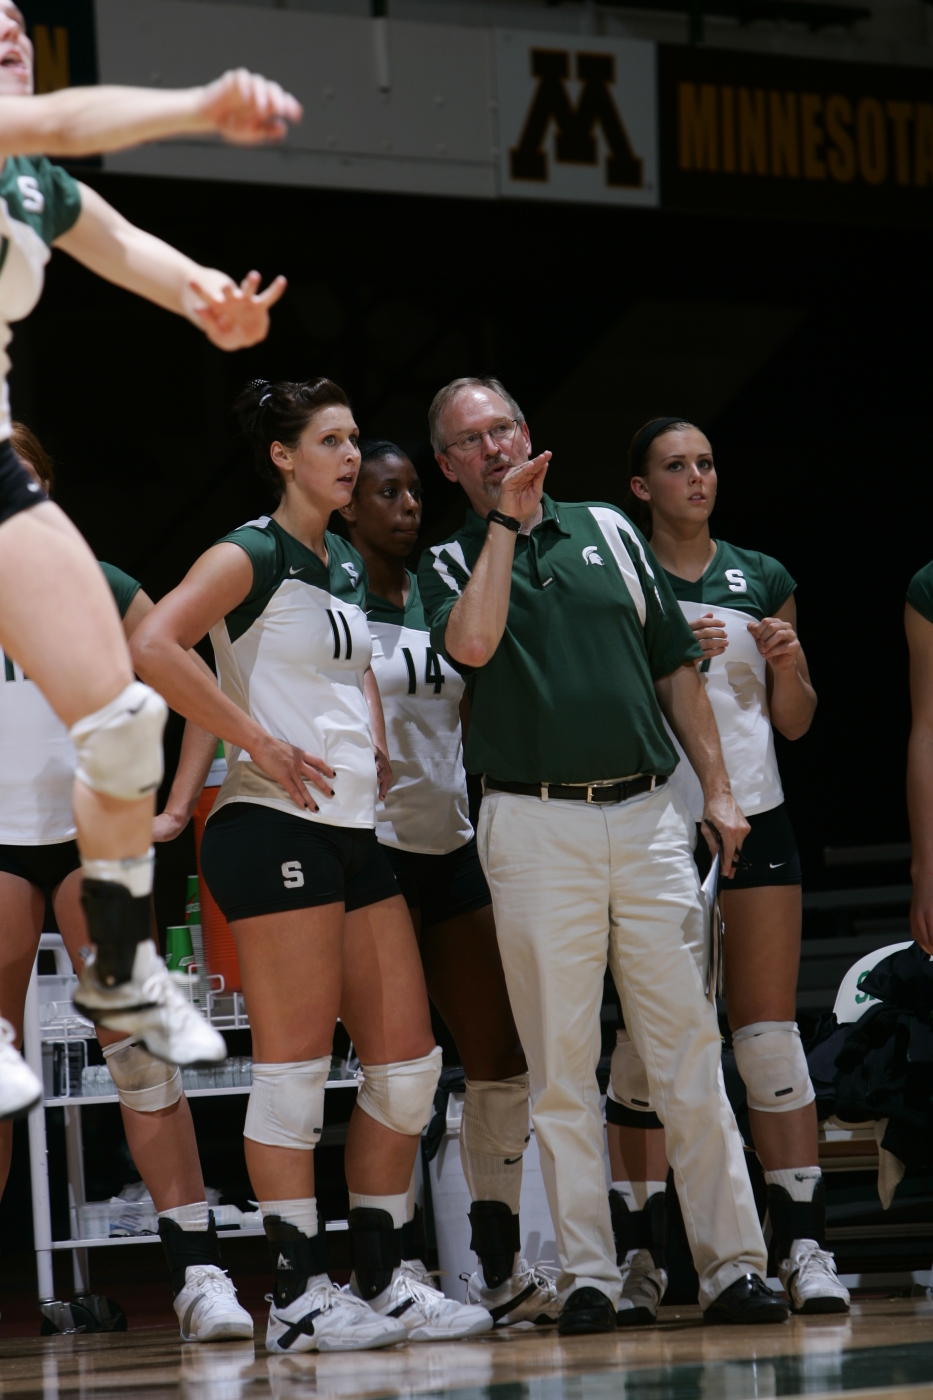 Msu Volleyball S Russ Carney Promoted To Associate Head Coach Michigan State University Athletics